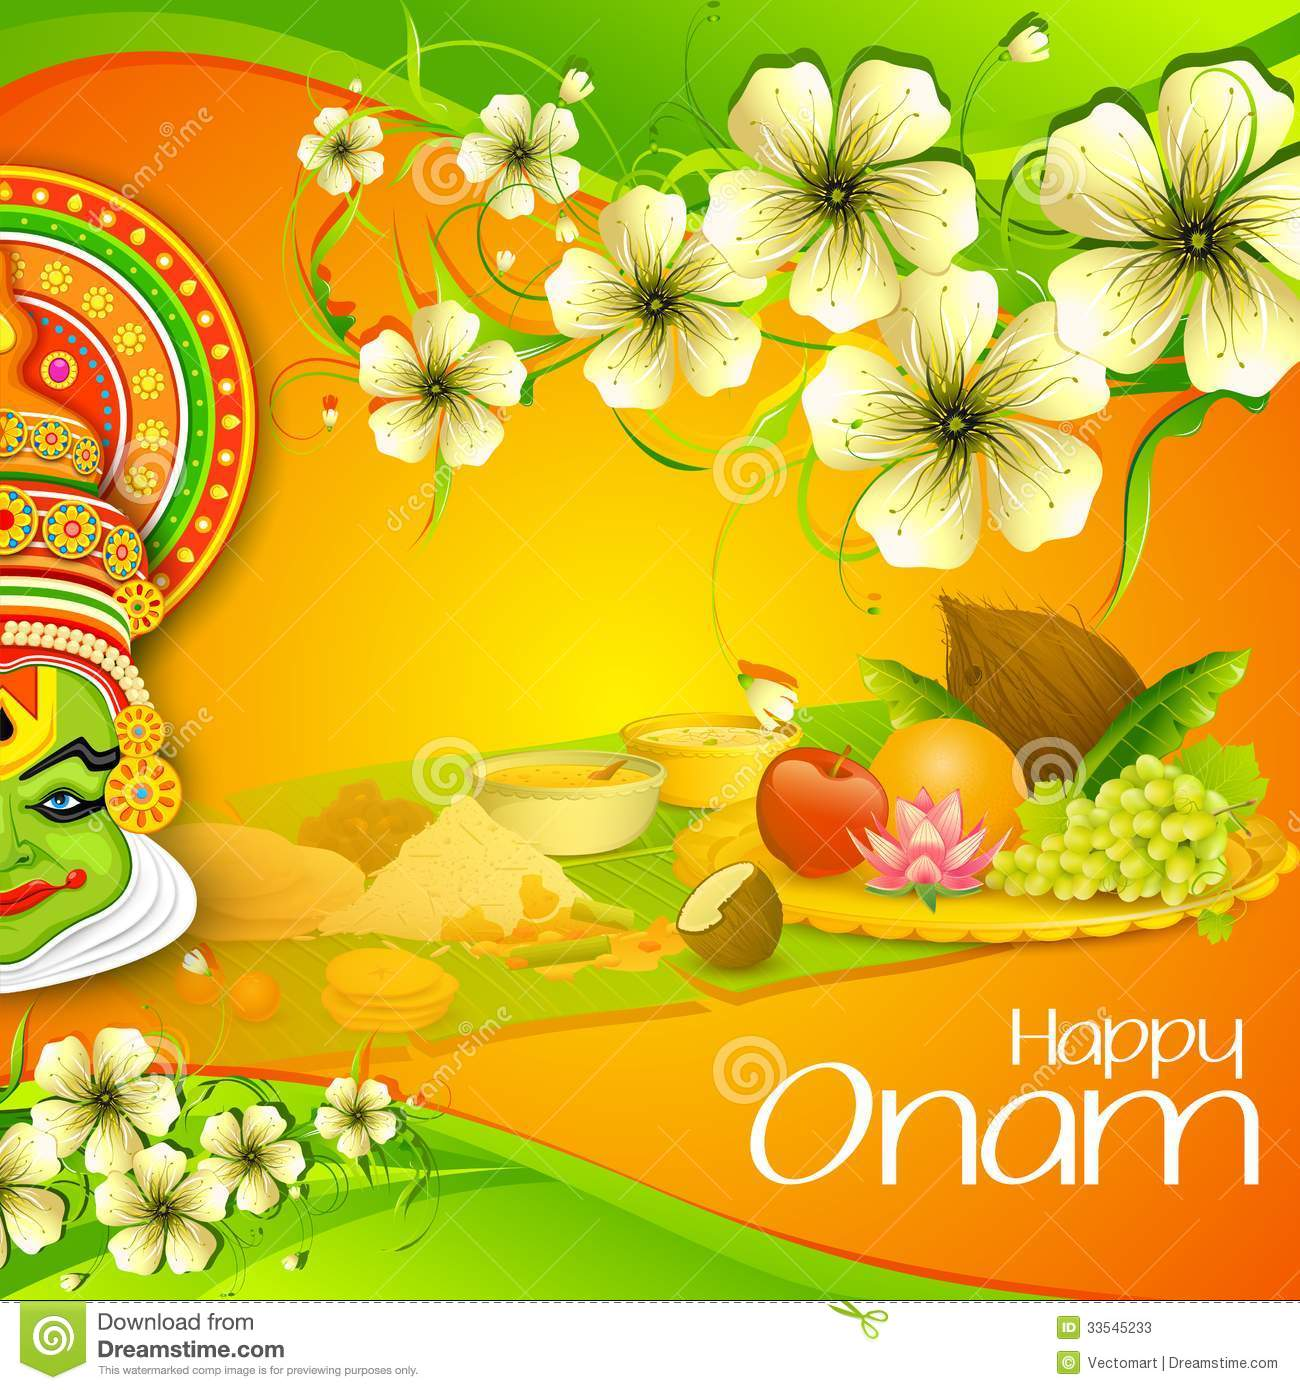 Latest Thiru Onam Wallpapers for Free Download